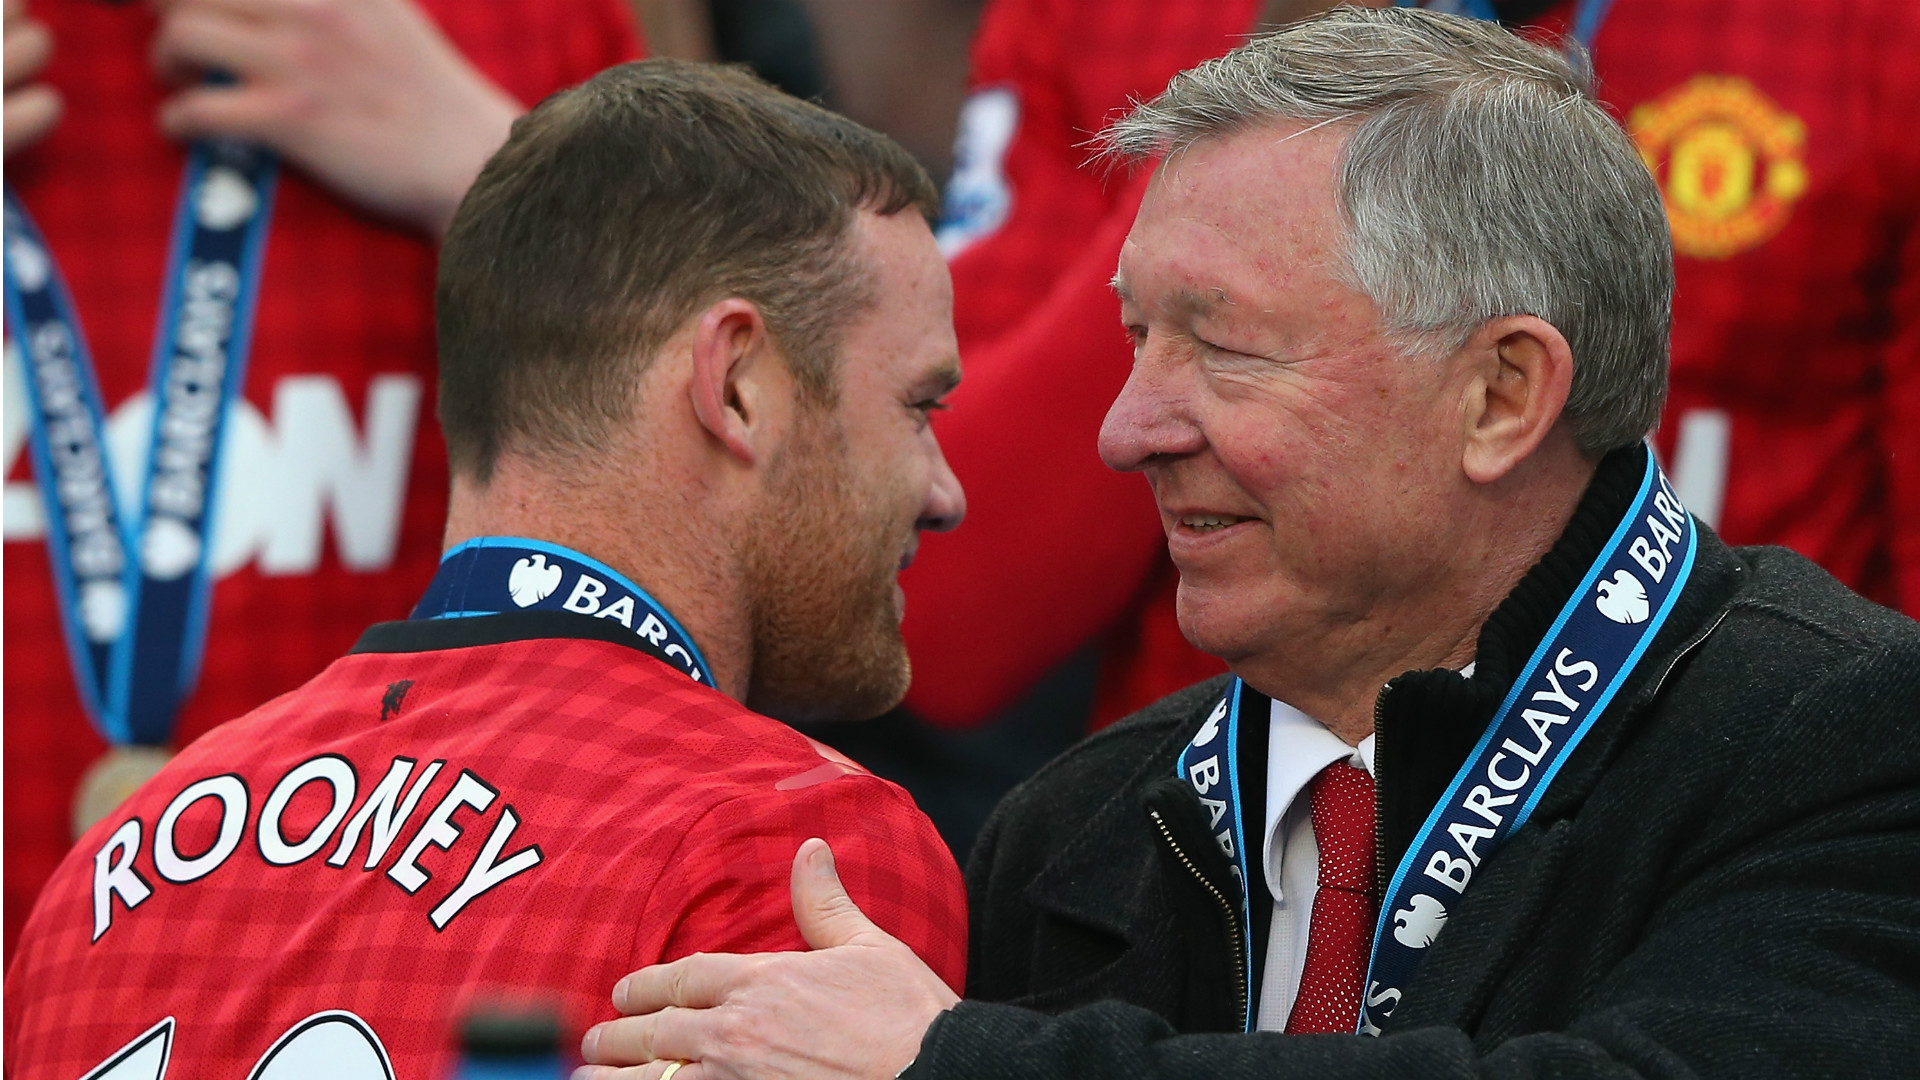 Wayne Rooney Alex Ferguson Manchester United Premier League 120513